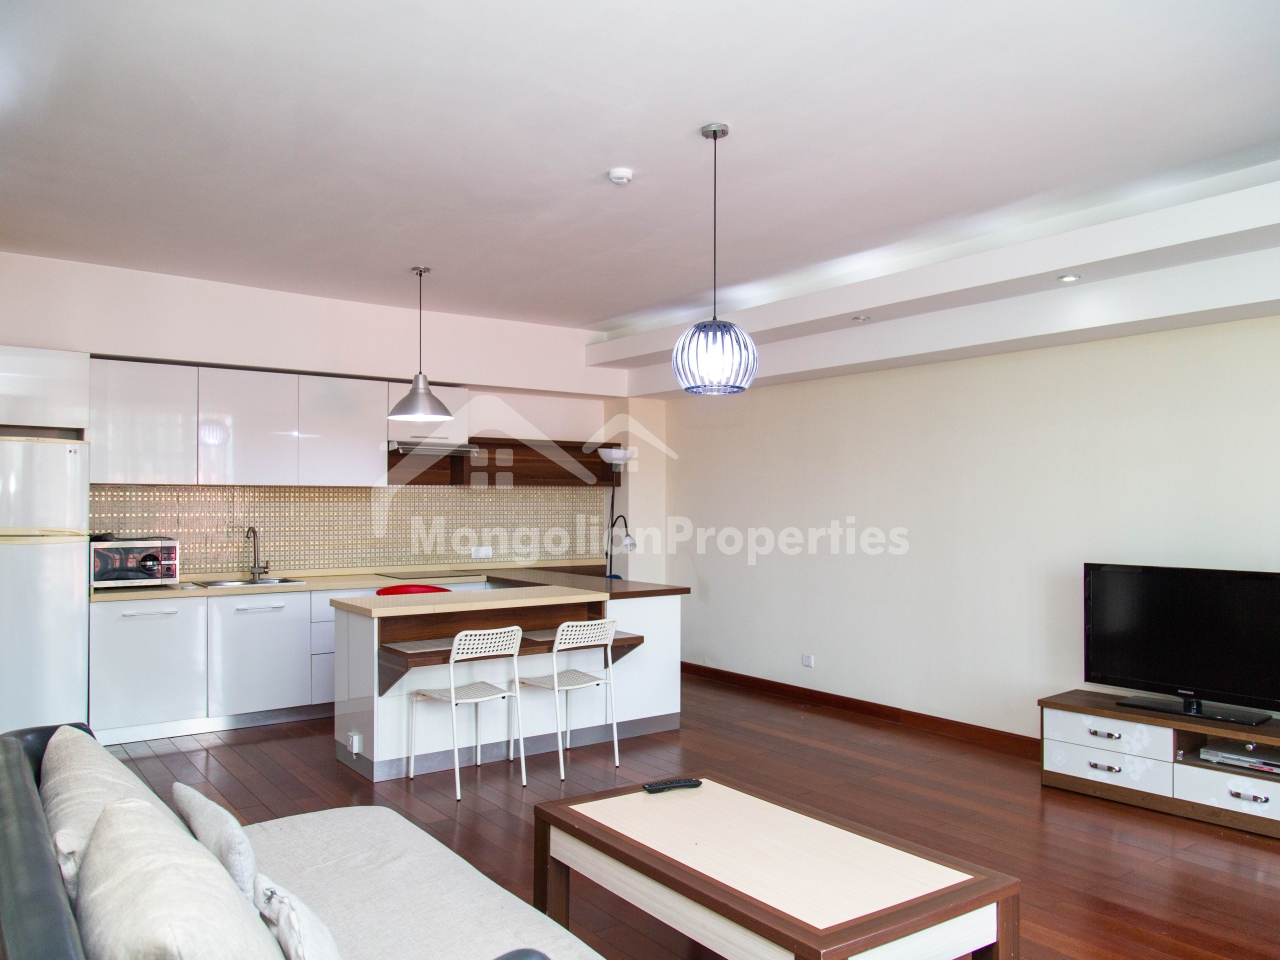 For rent: Clean 1 bedroom apartment is for rent near Shnagrila Hotel